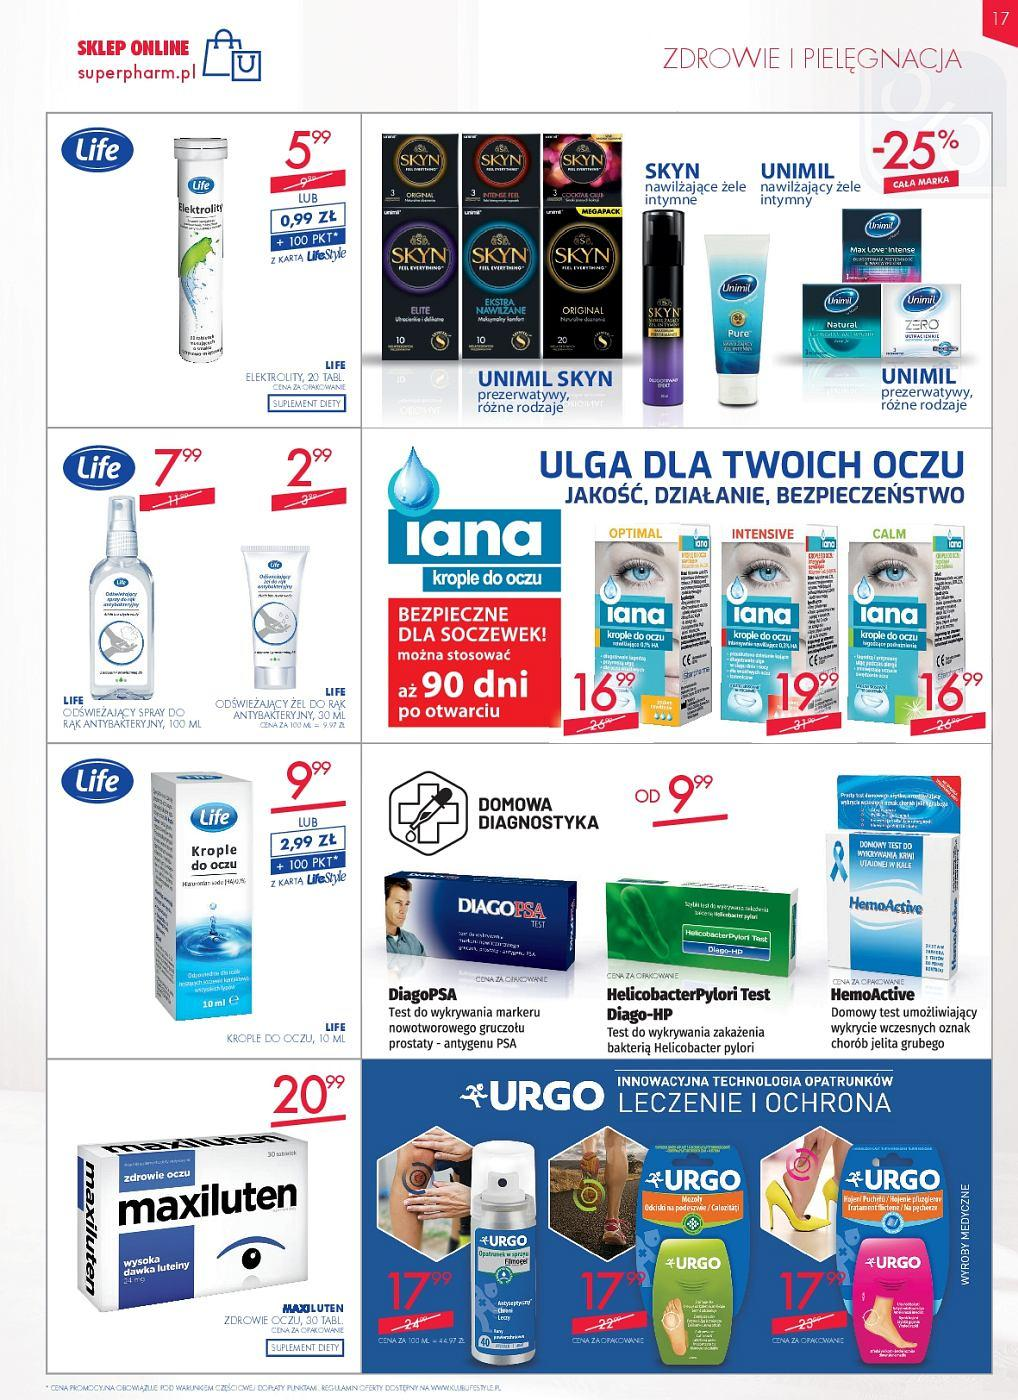 Gazetka promocyjna Superpharm do 13/06/2018 str.17